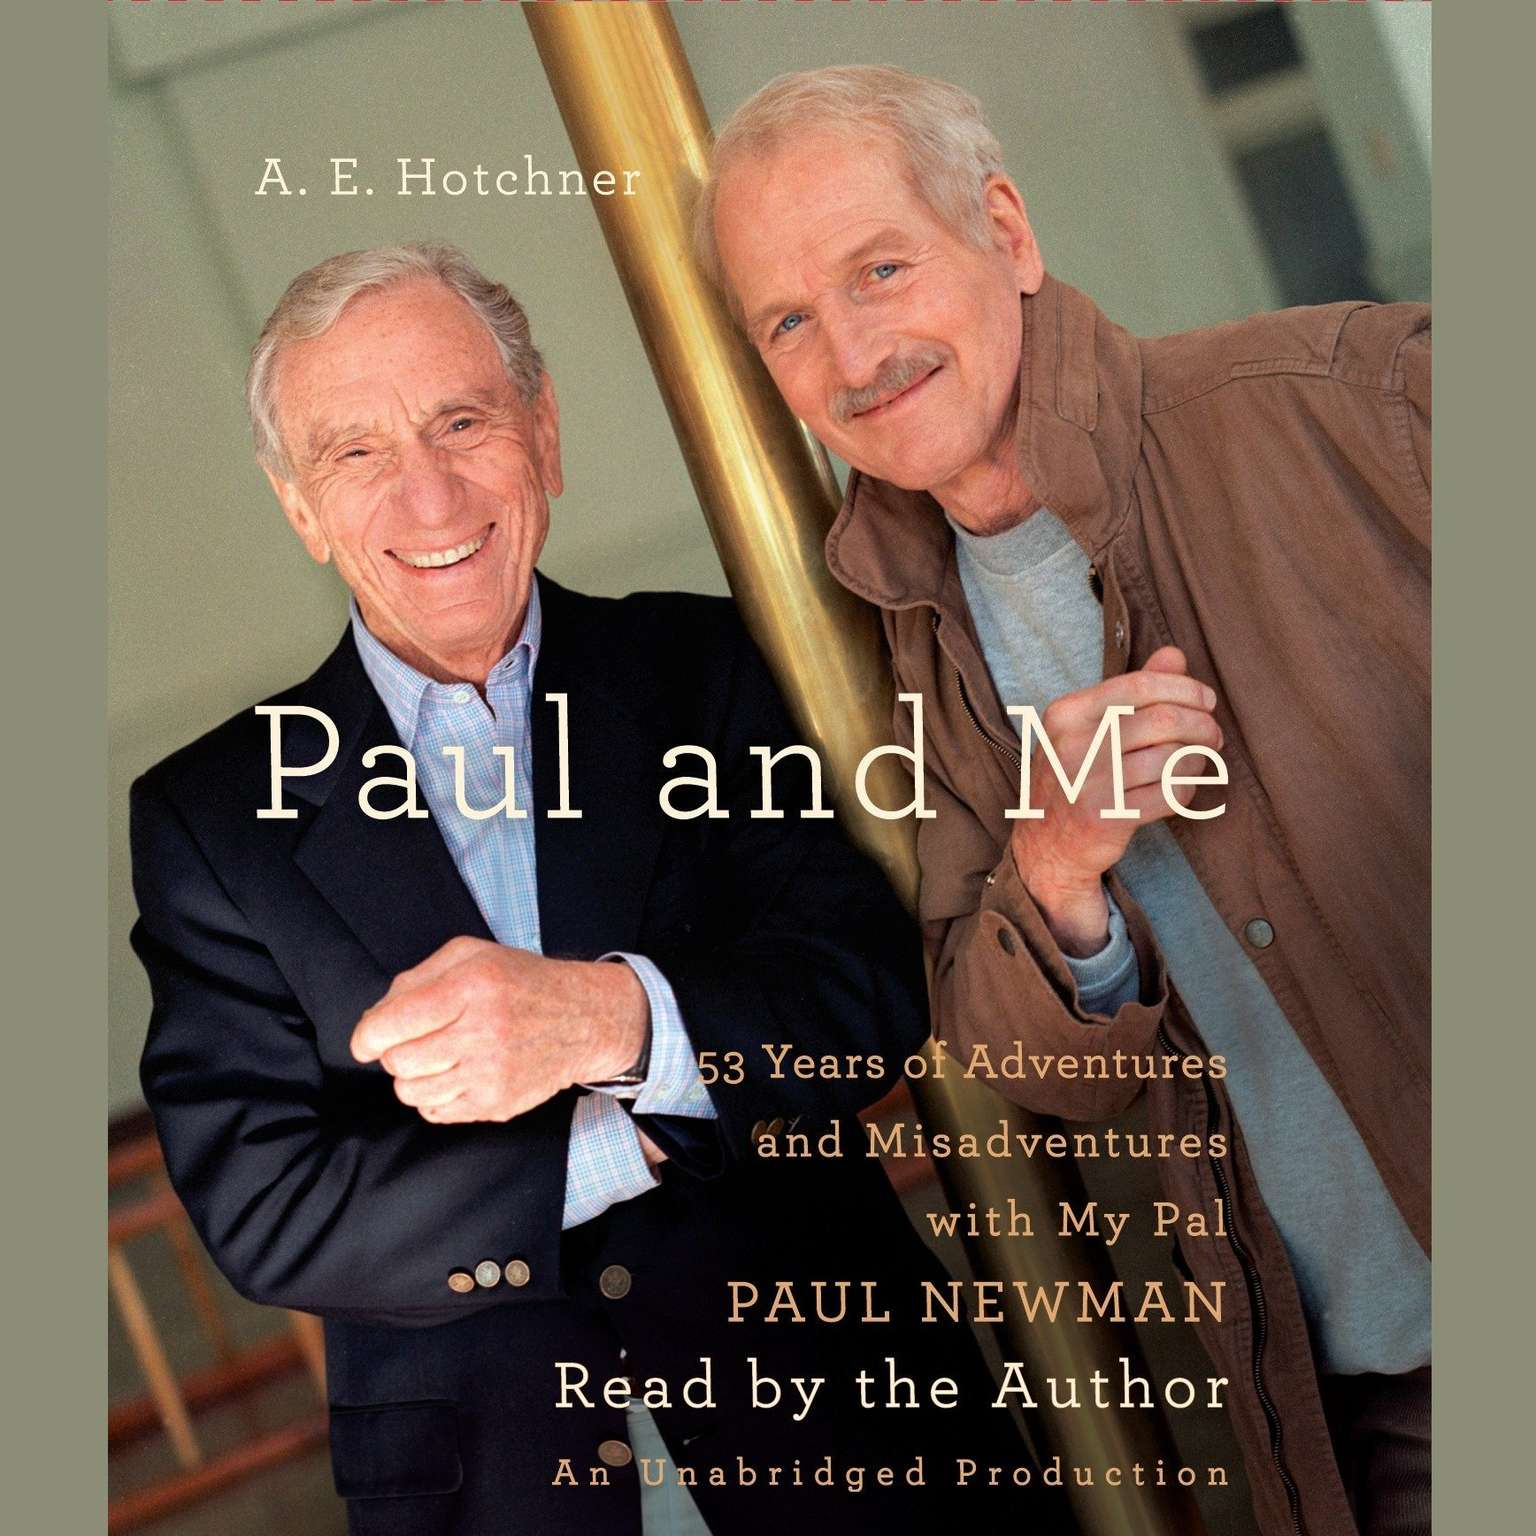 Printable Paul and Me: Fifty-three Years of Adventures and Misadventures with My Pal Paul Newman Audiobook Cover Art